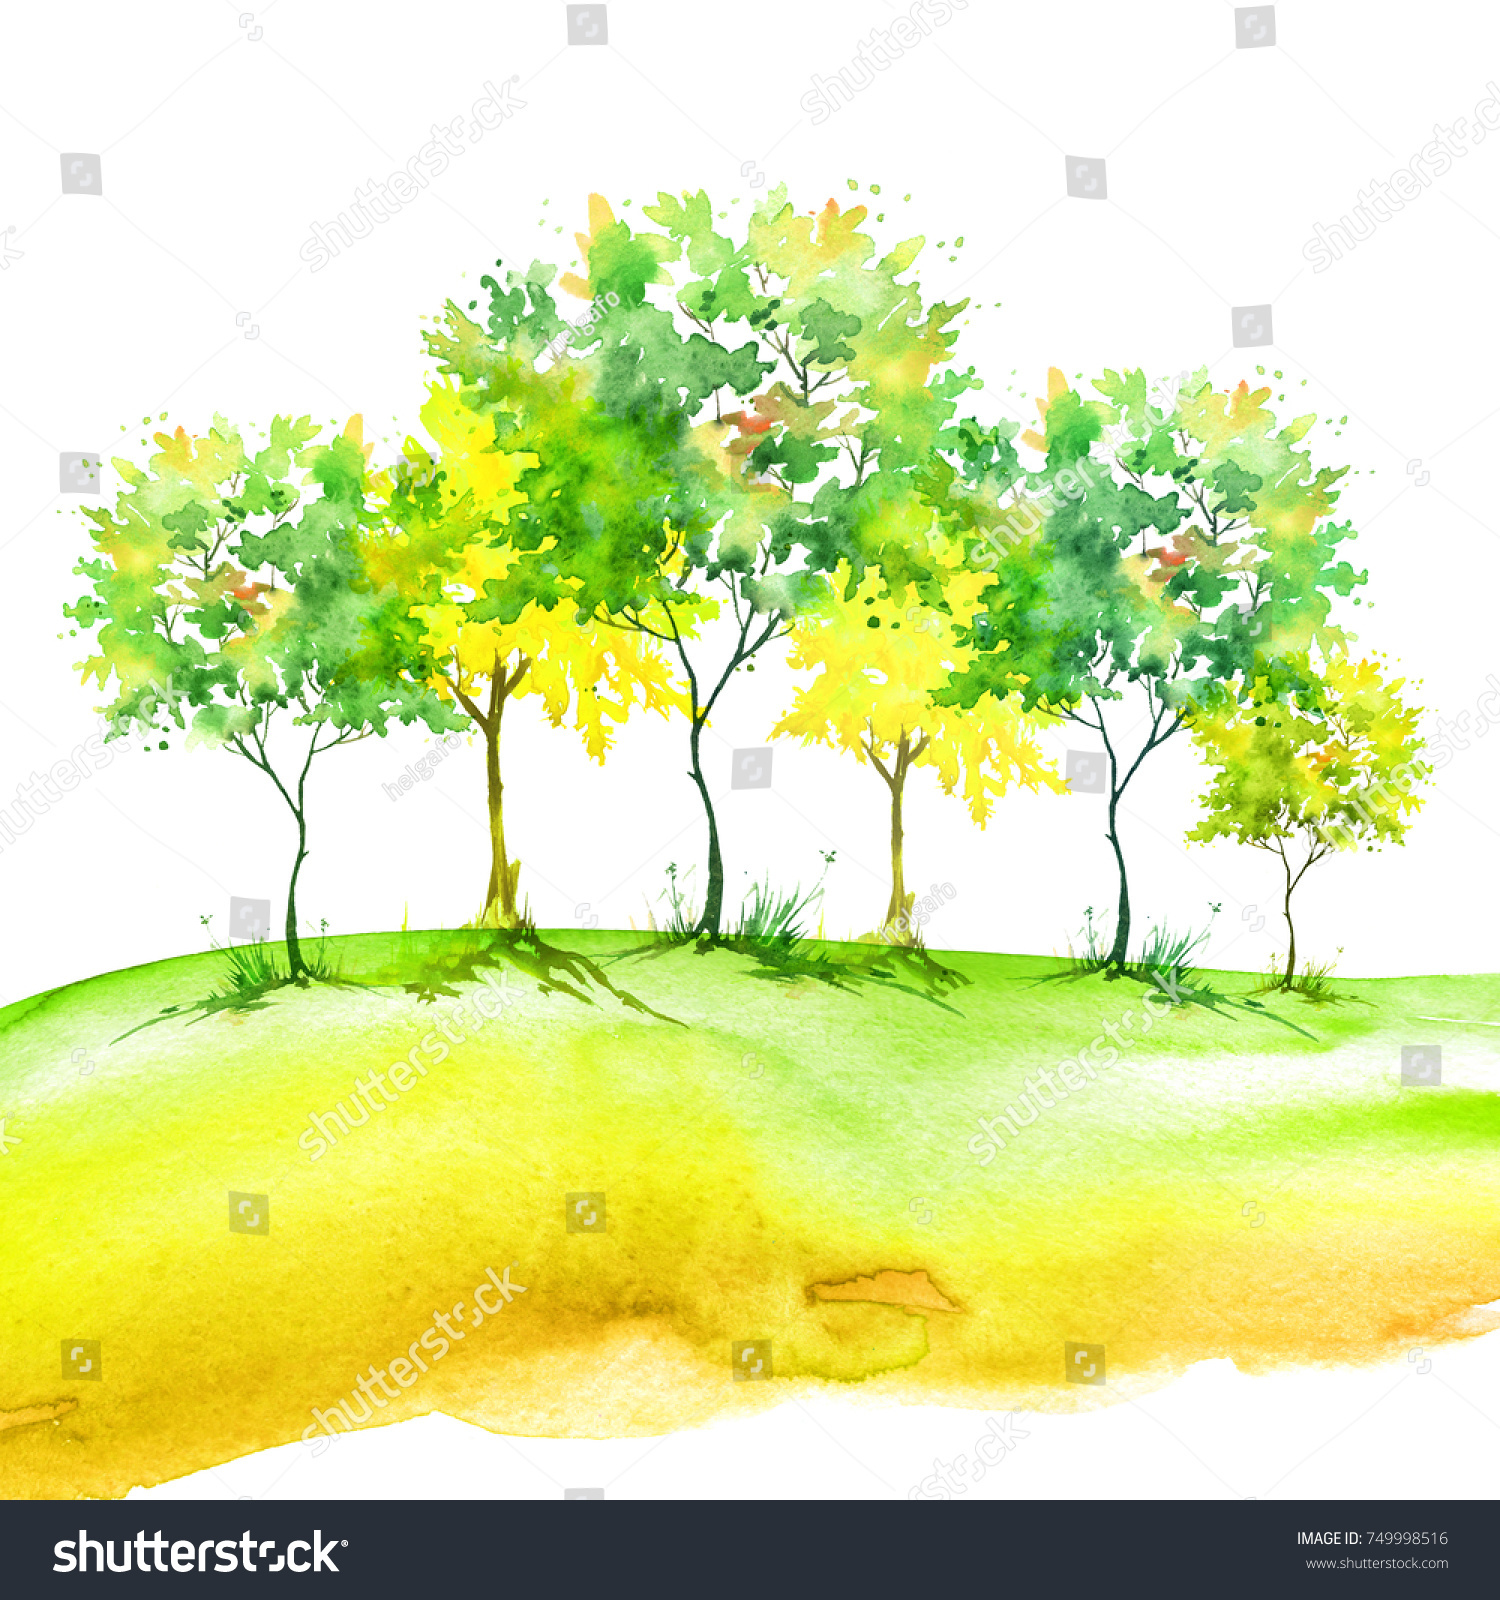 Watercolor Painting Group Green Yellow Trees Stock Illustration ...